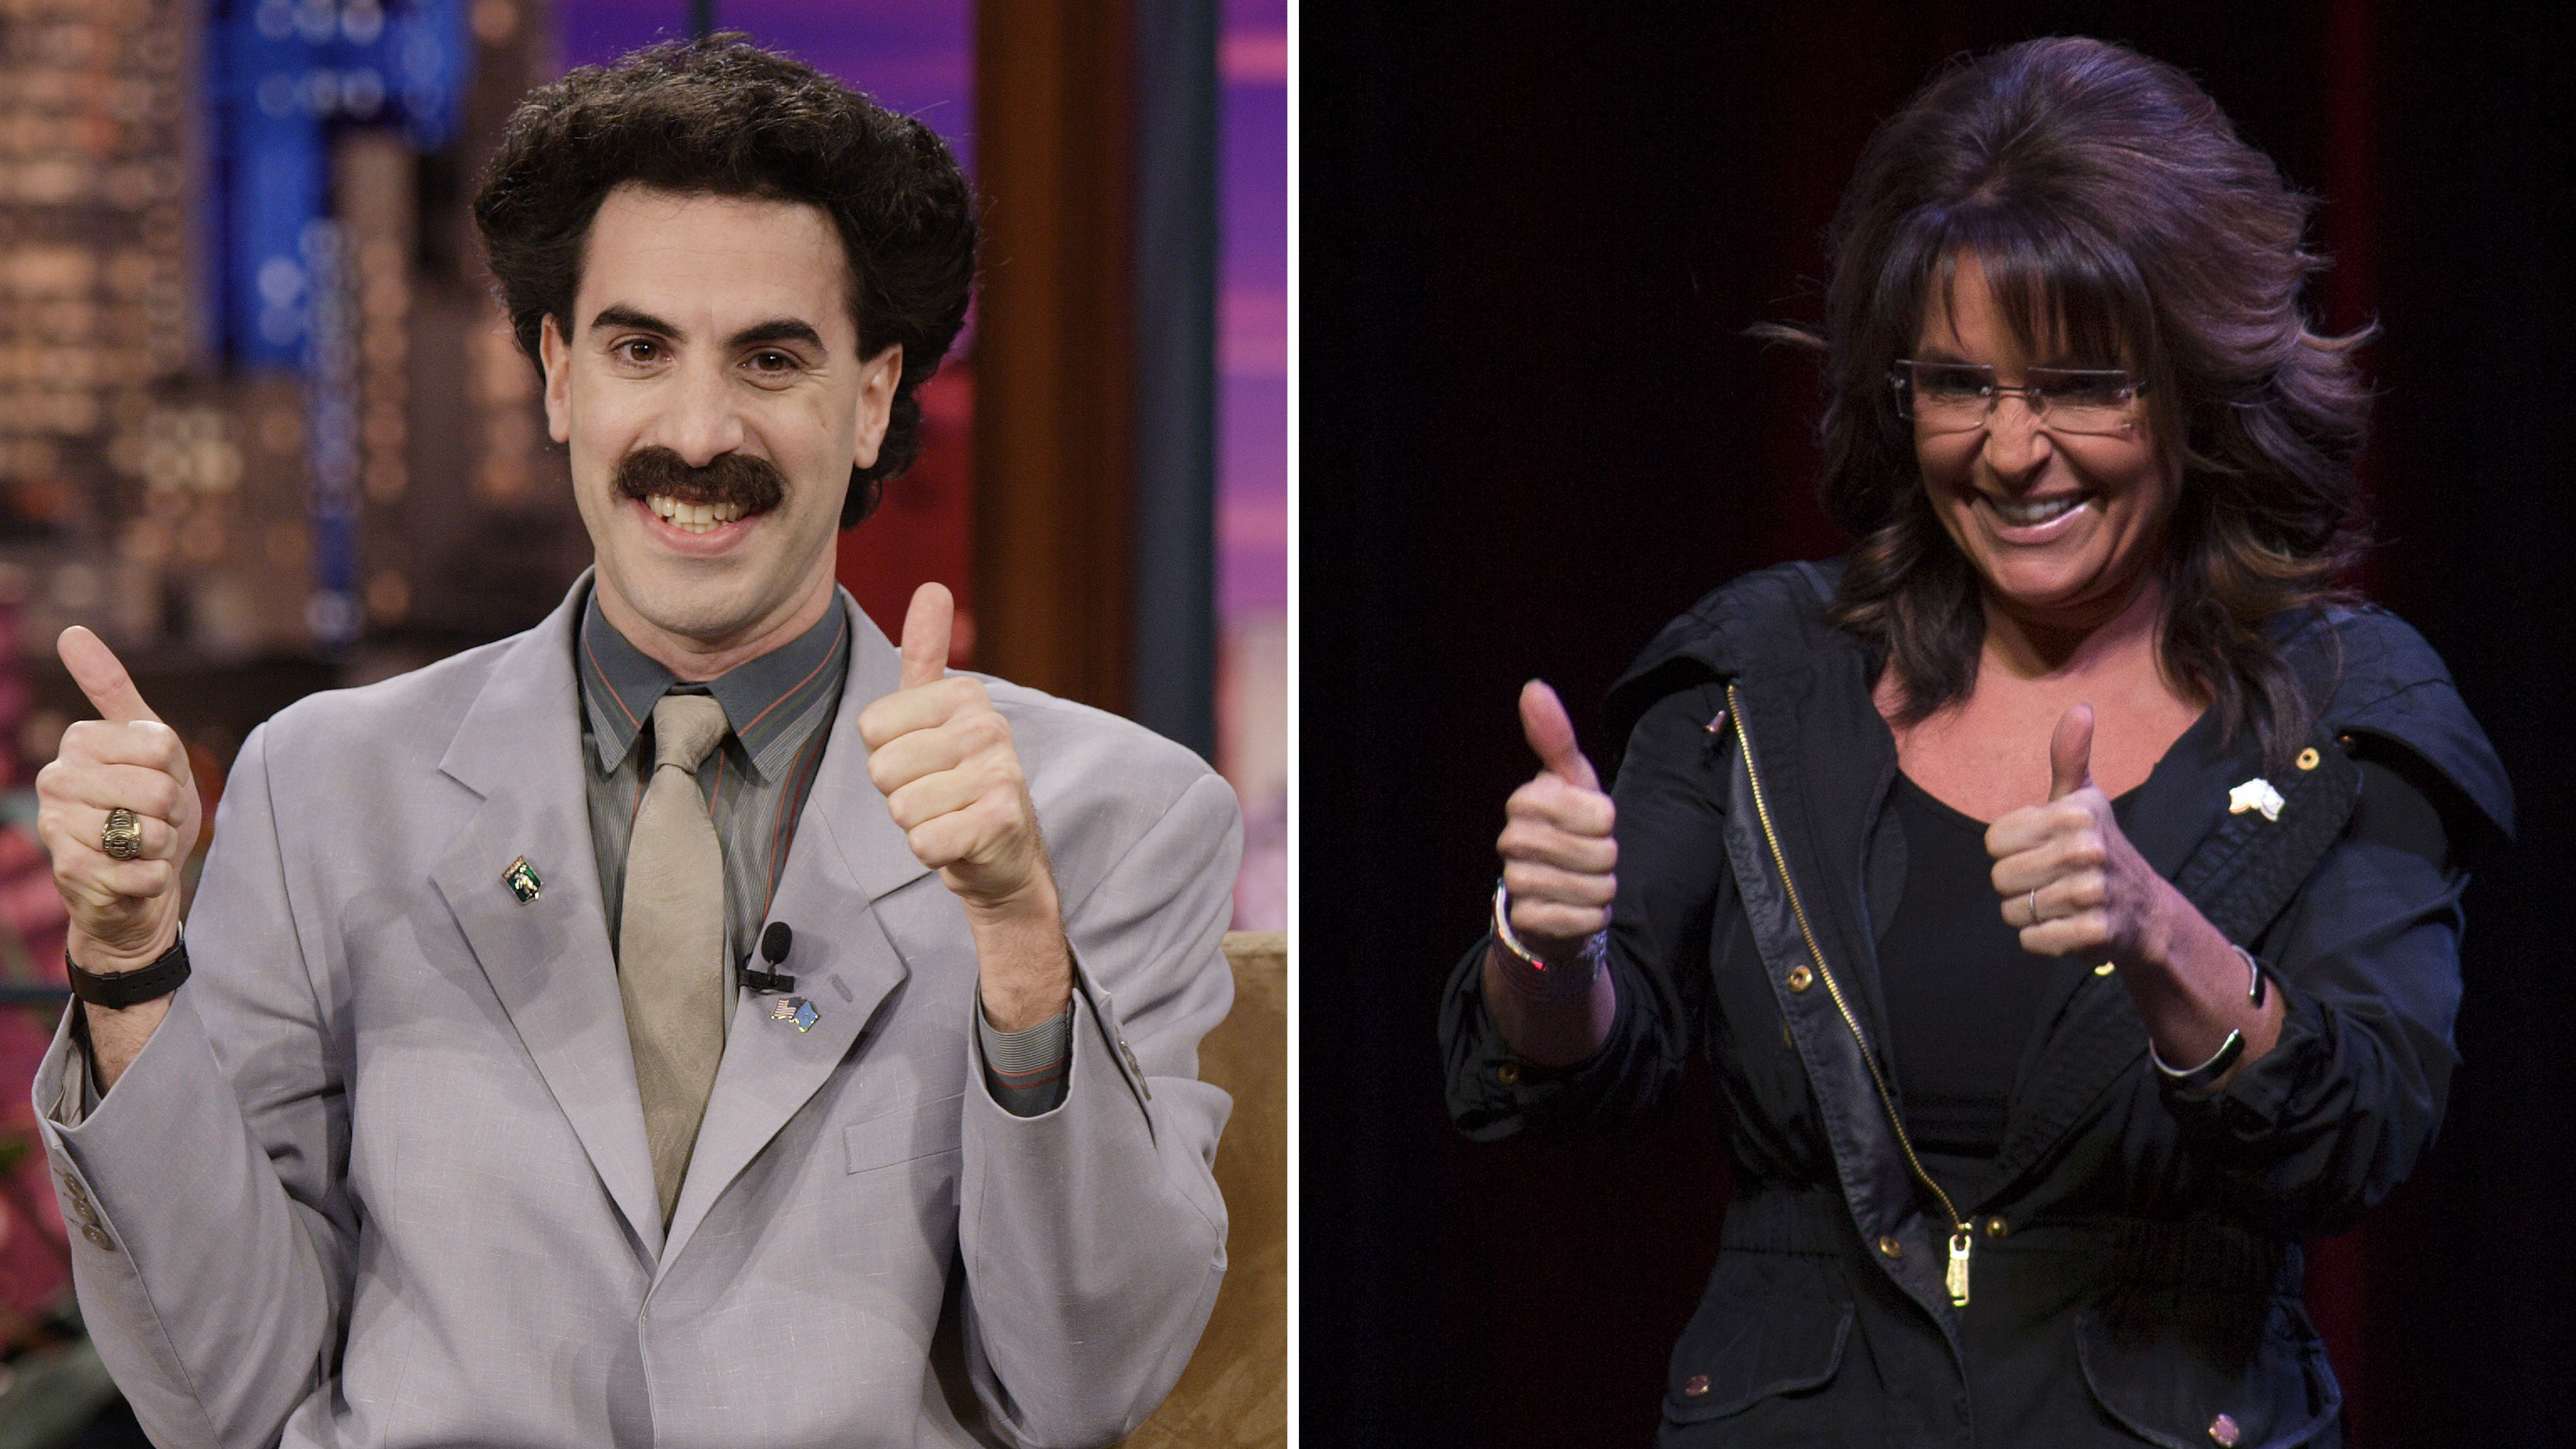 Sacha Baron Cohen Just Asked Sarah Palin to Be His 'Date' to the Golden Globes